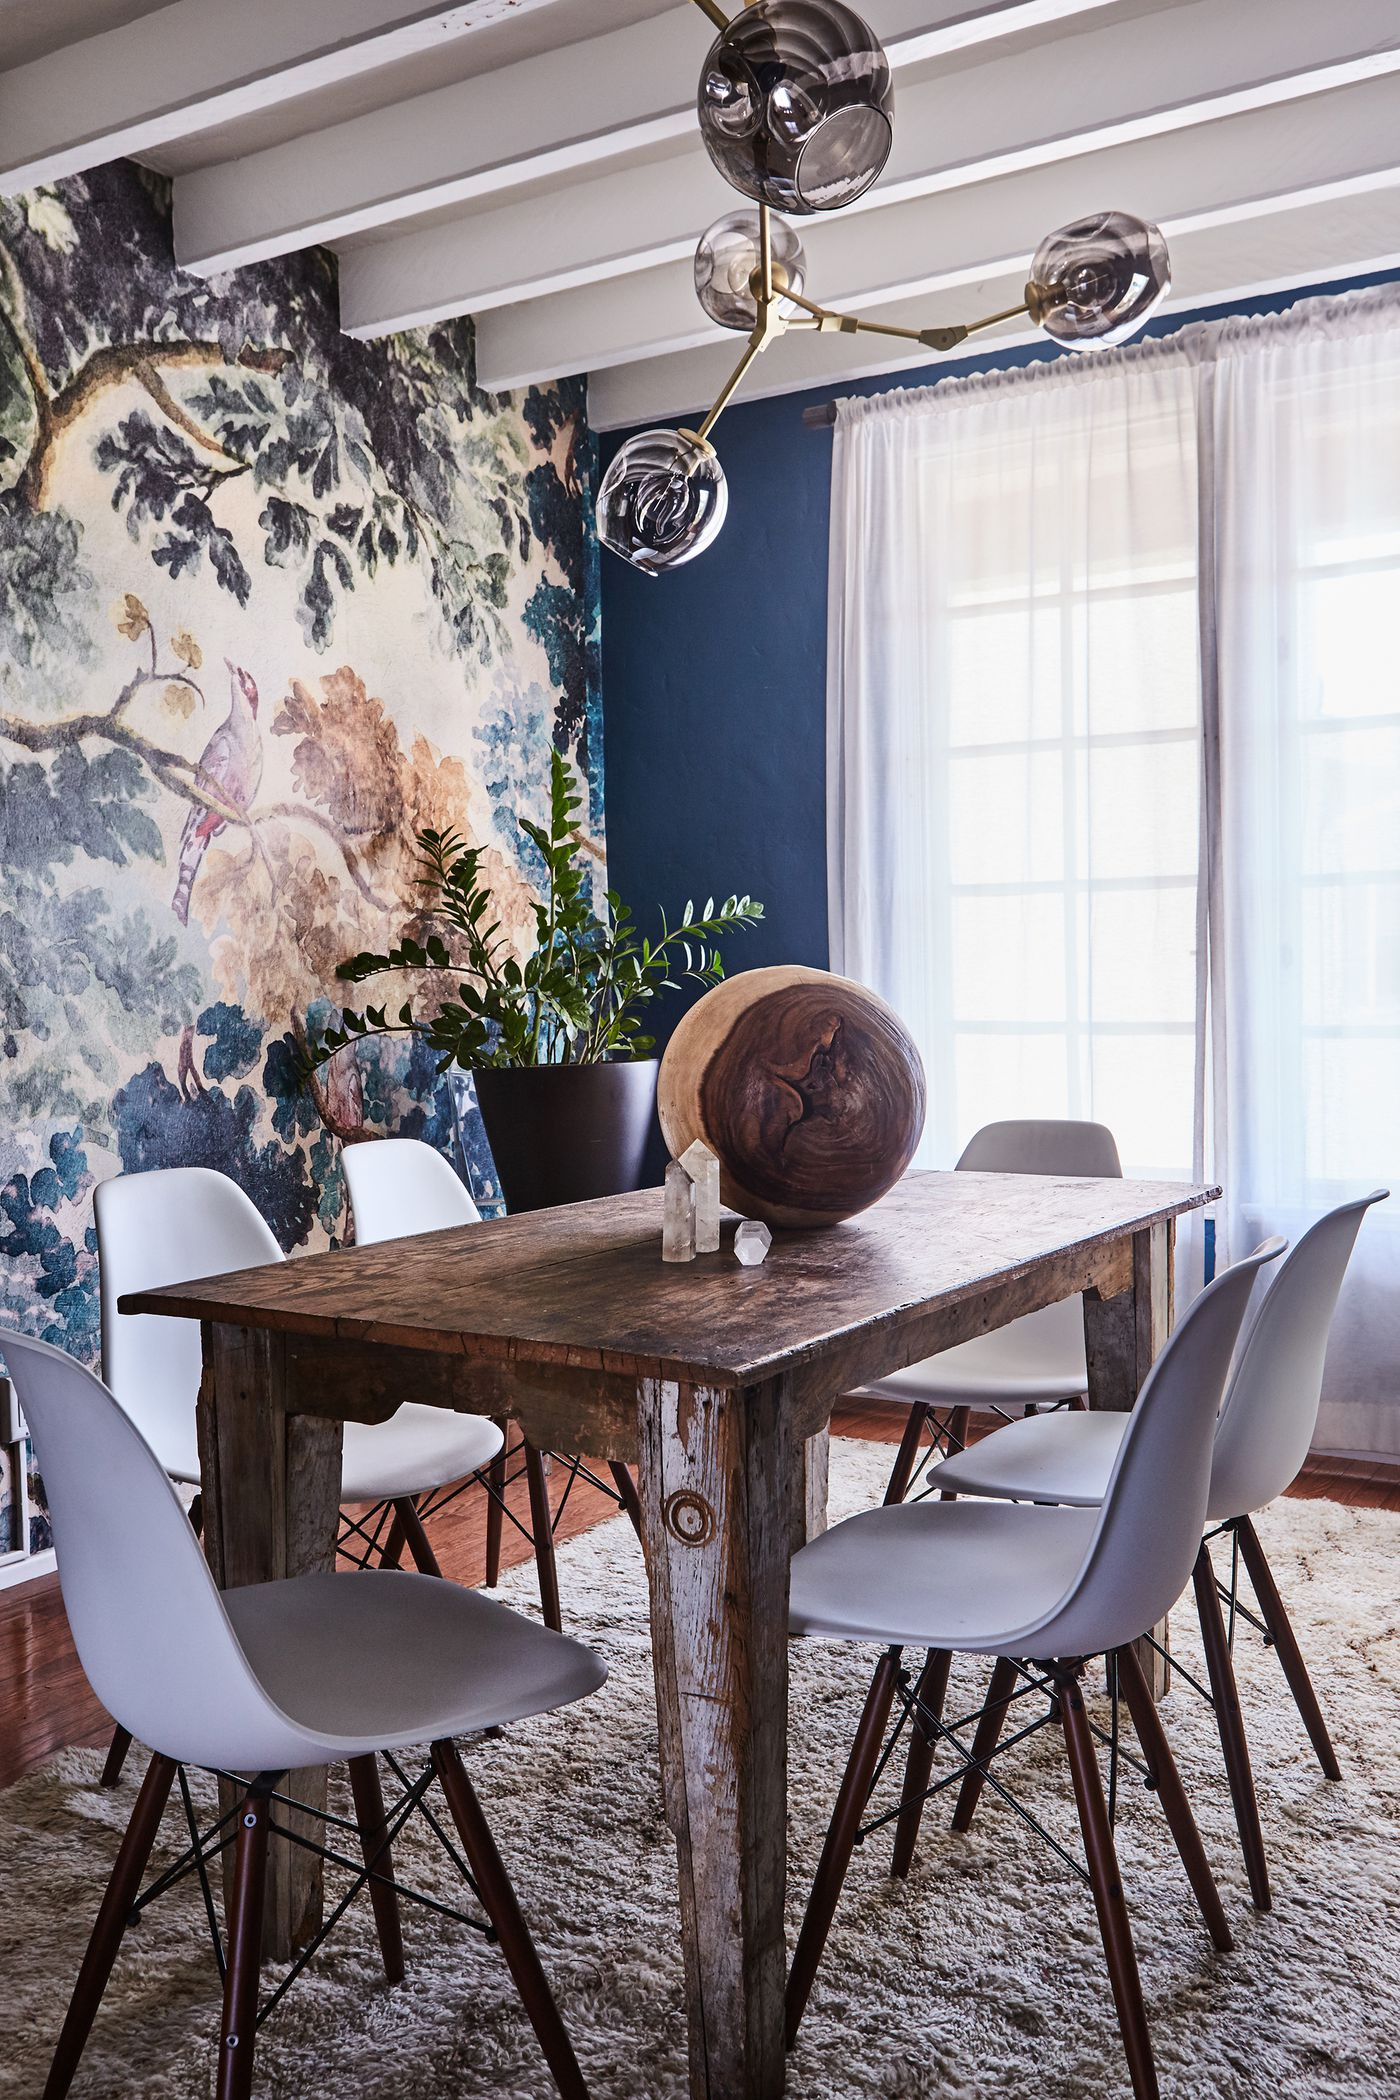 24 Kitchen And Dining Room Ideas For The Holiday Season – Curbed Inside Best And Newest Valladares 3 Piece Pub Table Sets (View 18 of 20)